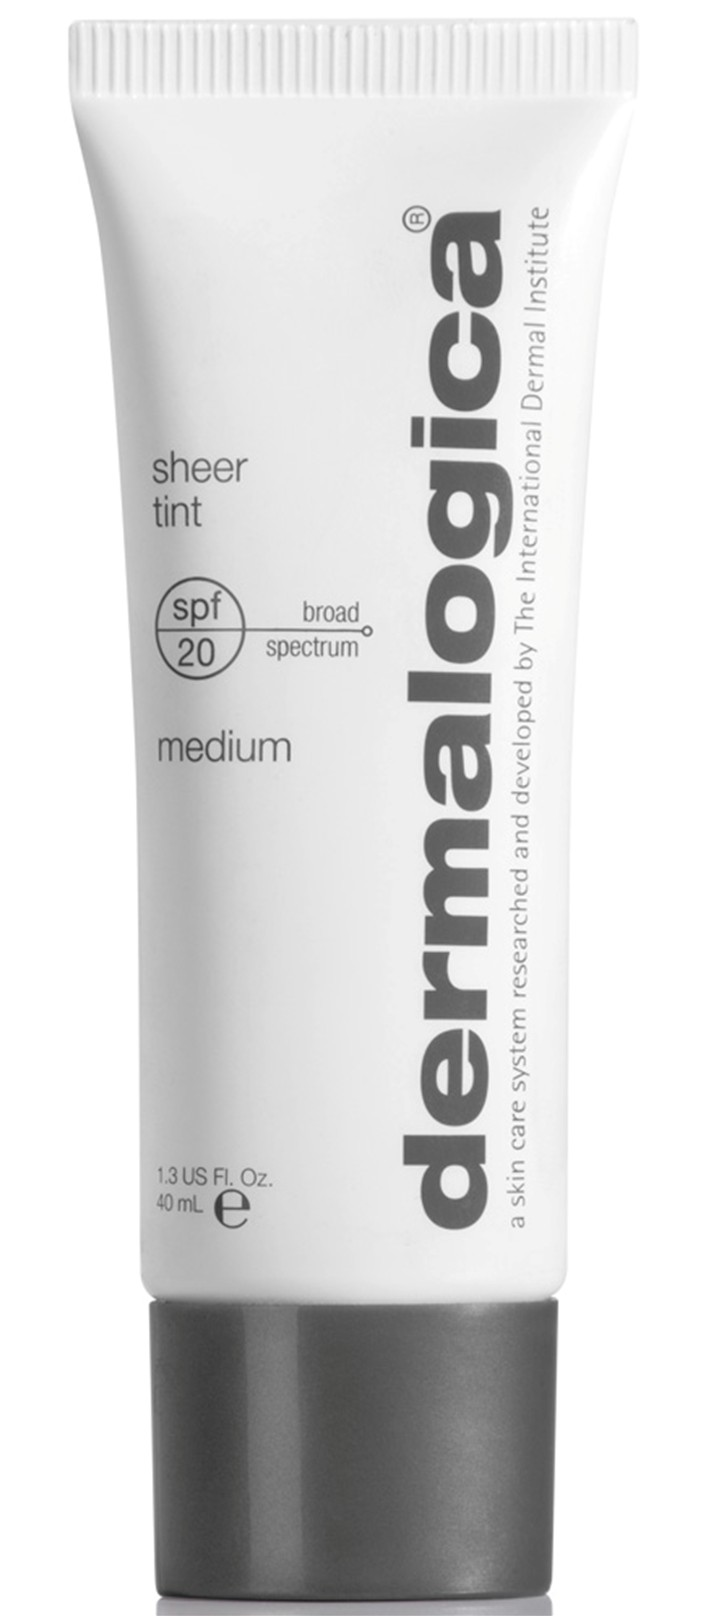 "DERMALOGICA ���� ���������� ����������� ""������� ���"" SPF20 / Sheer Tint Medium 40��"